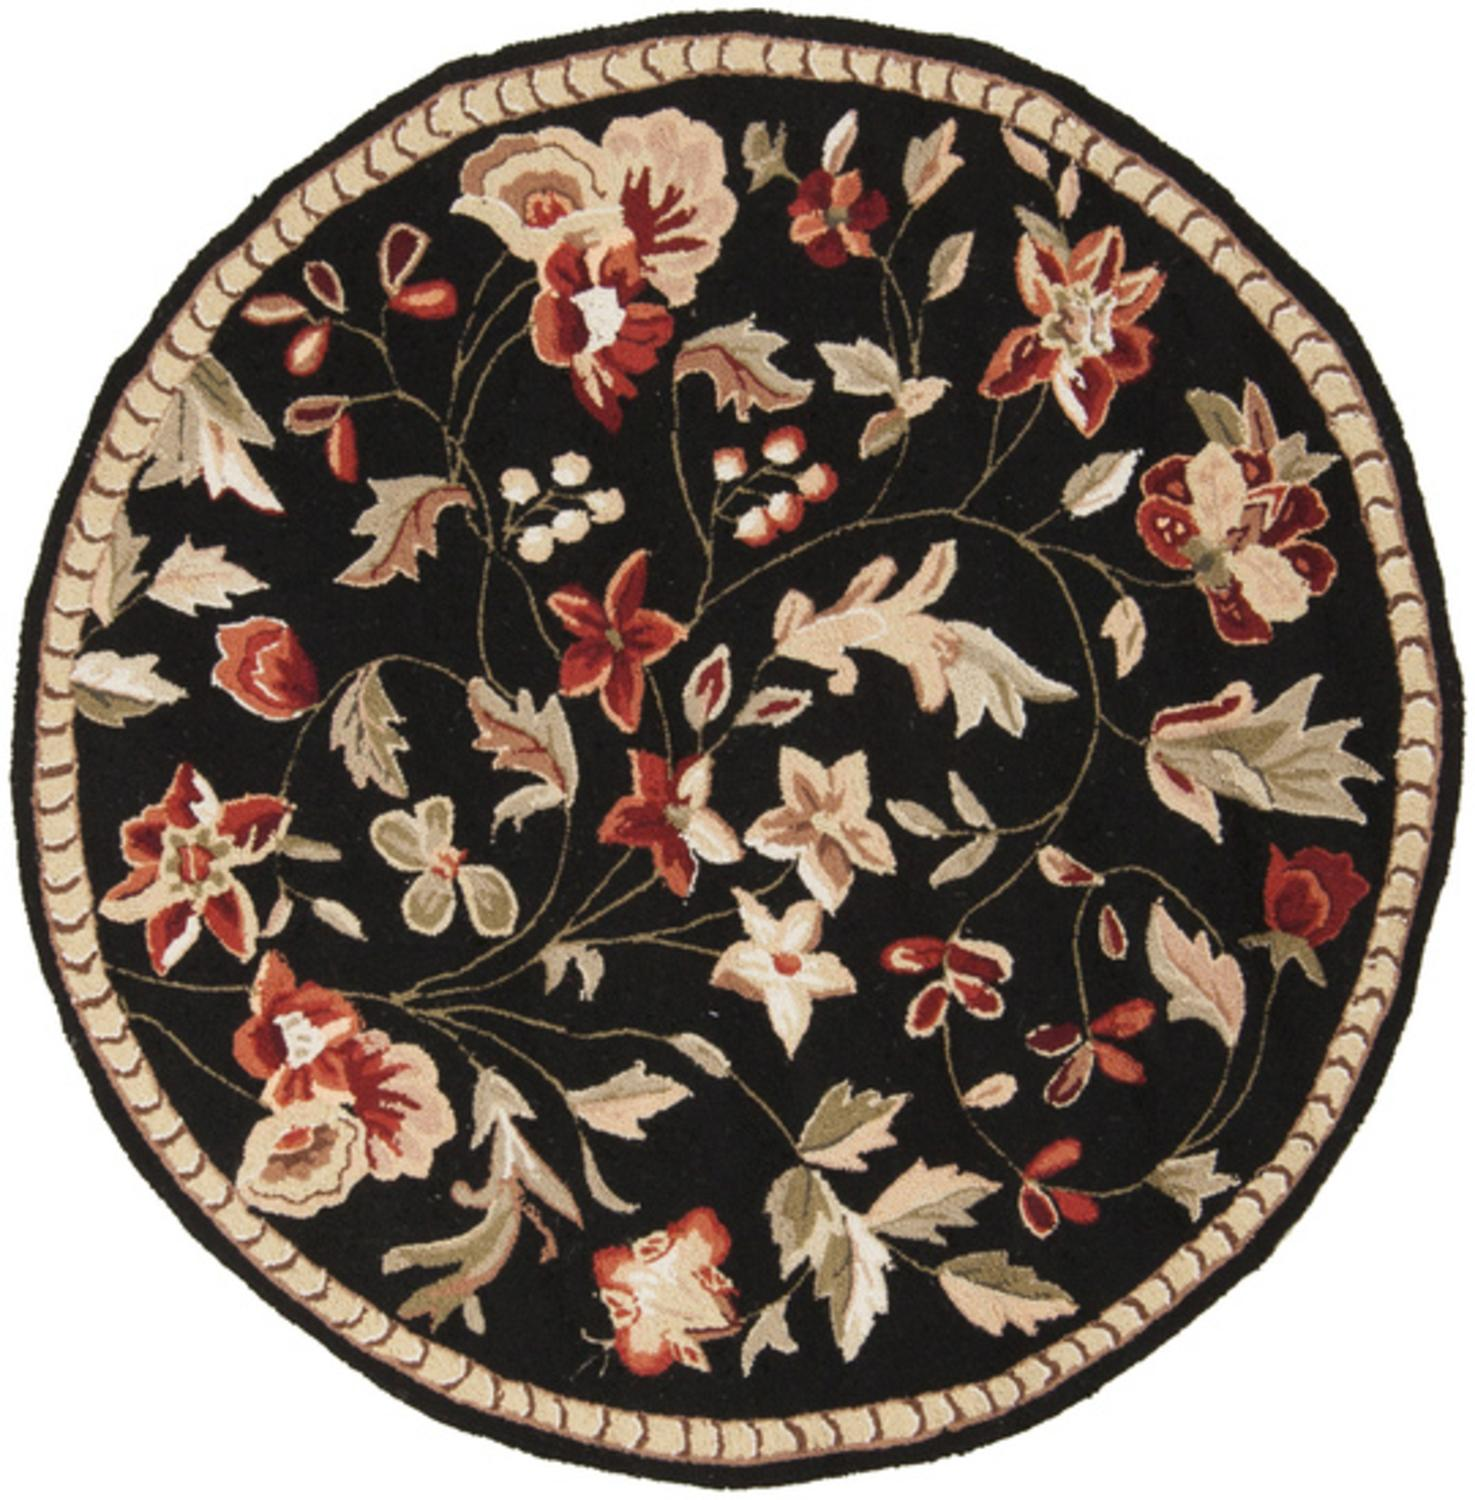 3' Raspberry Blossom Caviar Black and Wine Hand Hooked Round Wool Area Throw Rug